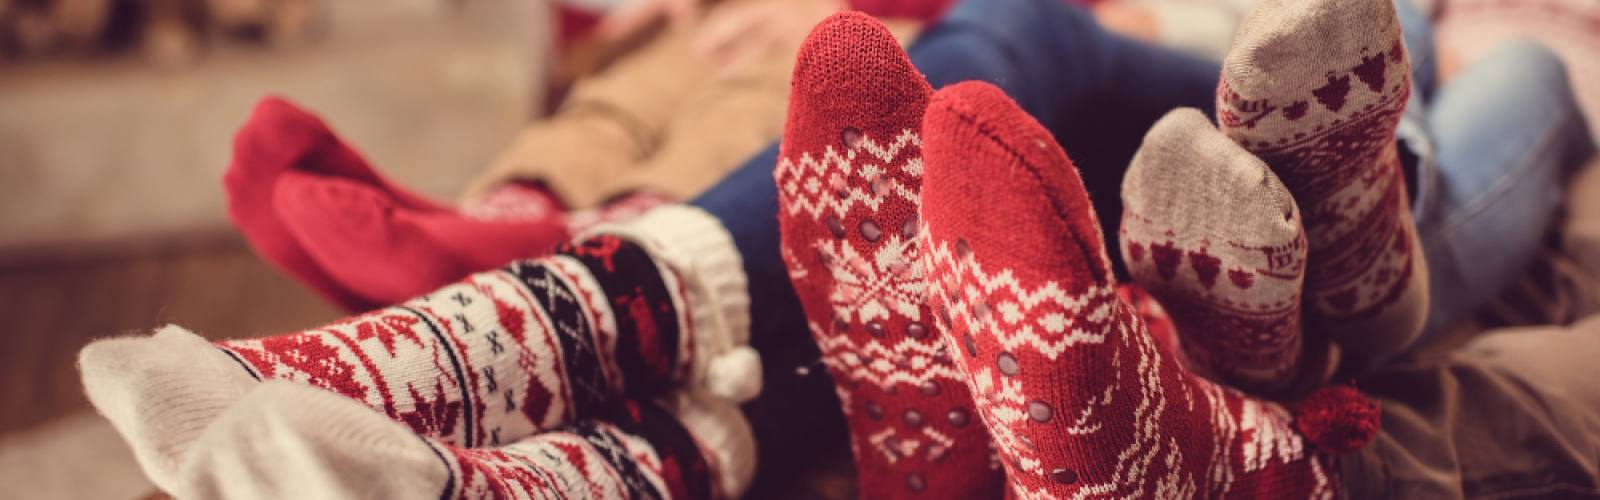 Energy-saving gifts for Christmas cheer